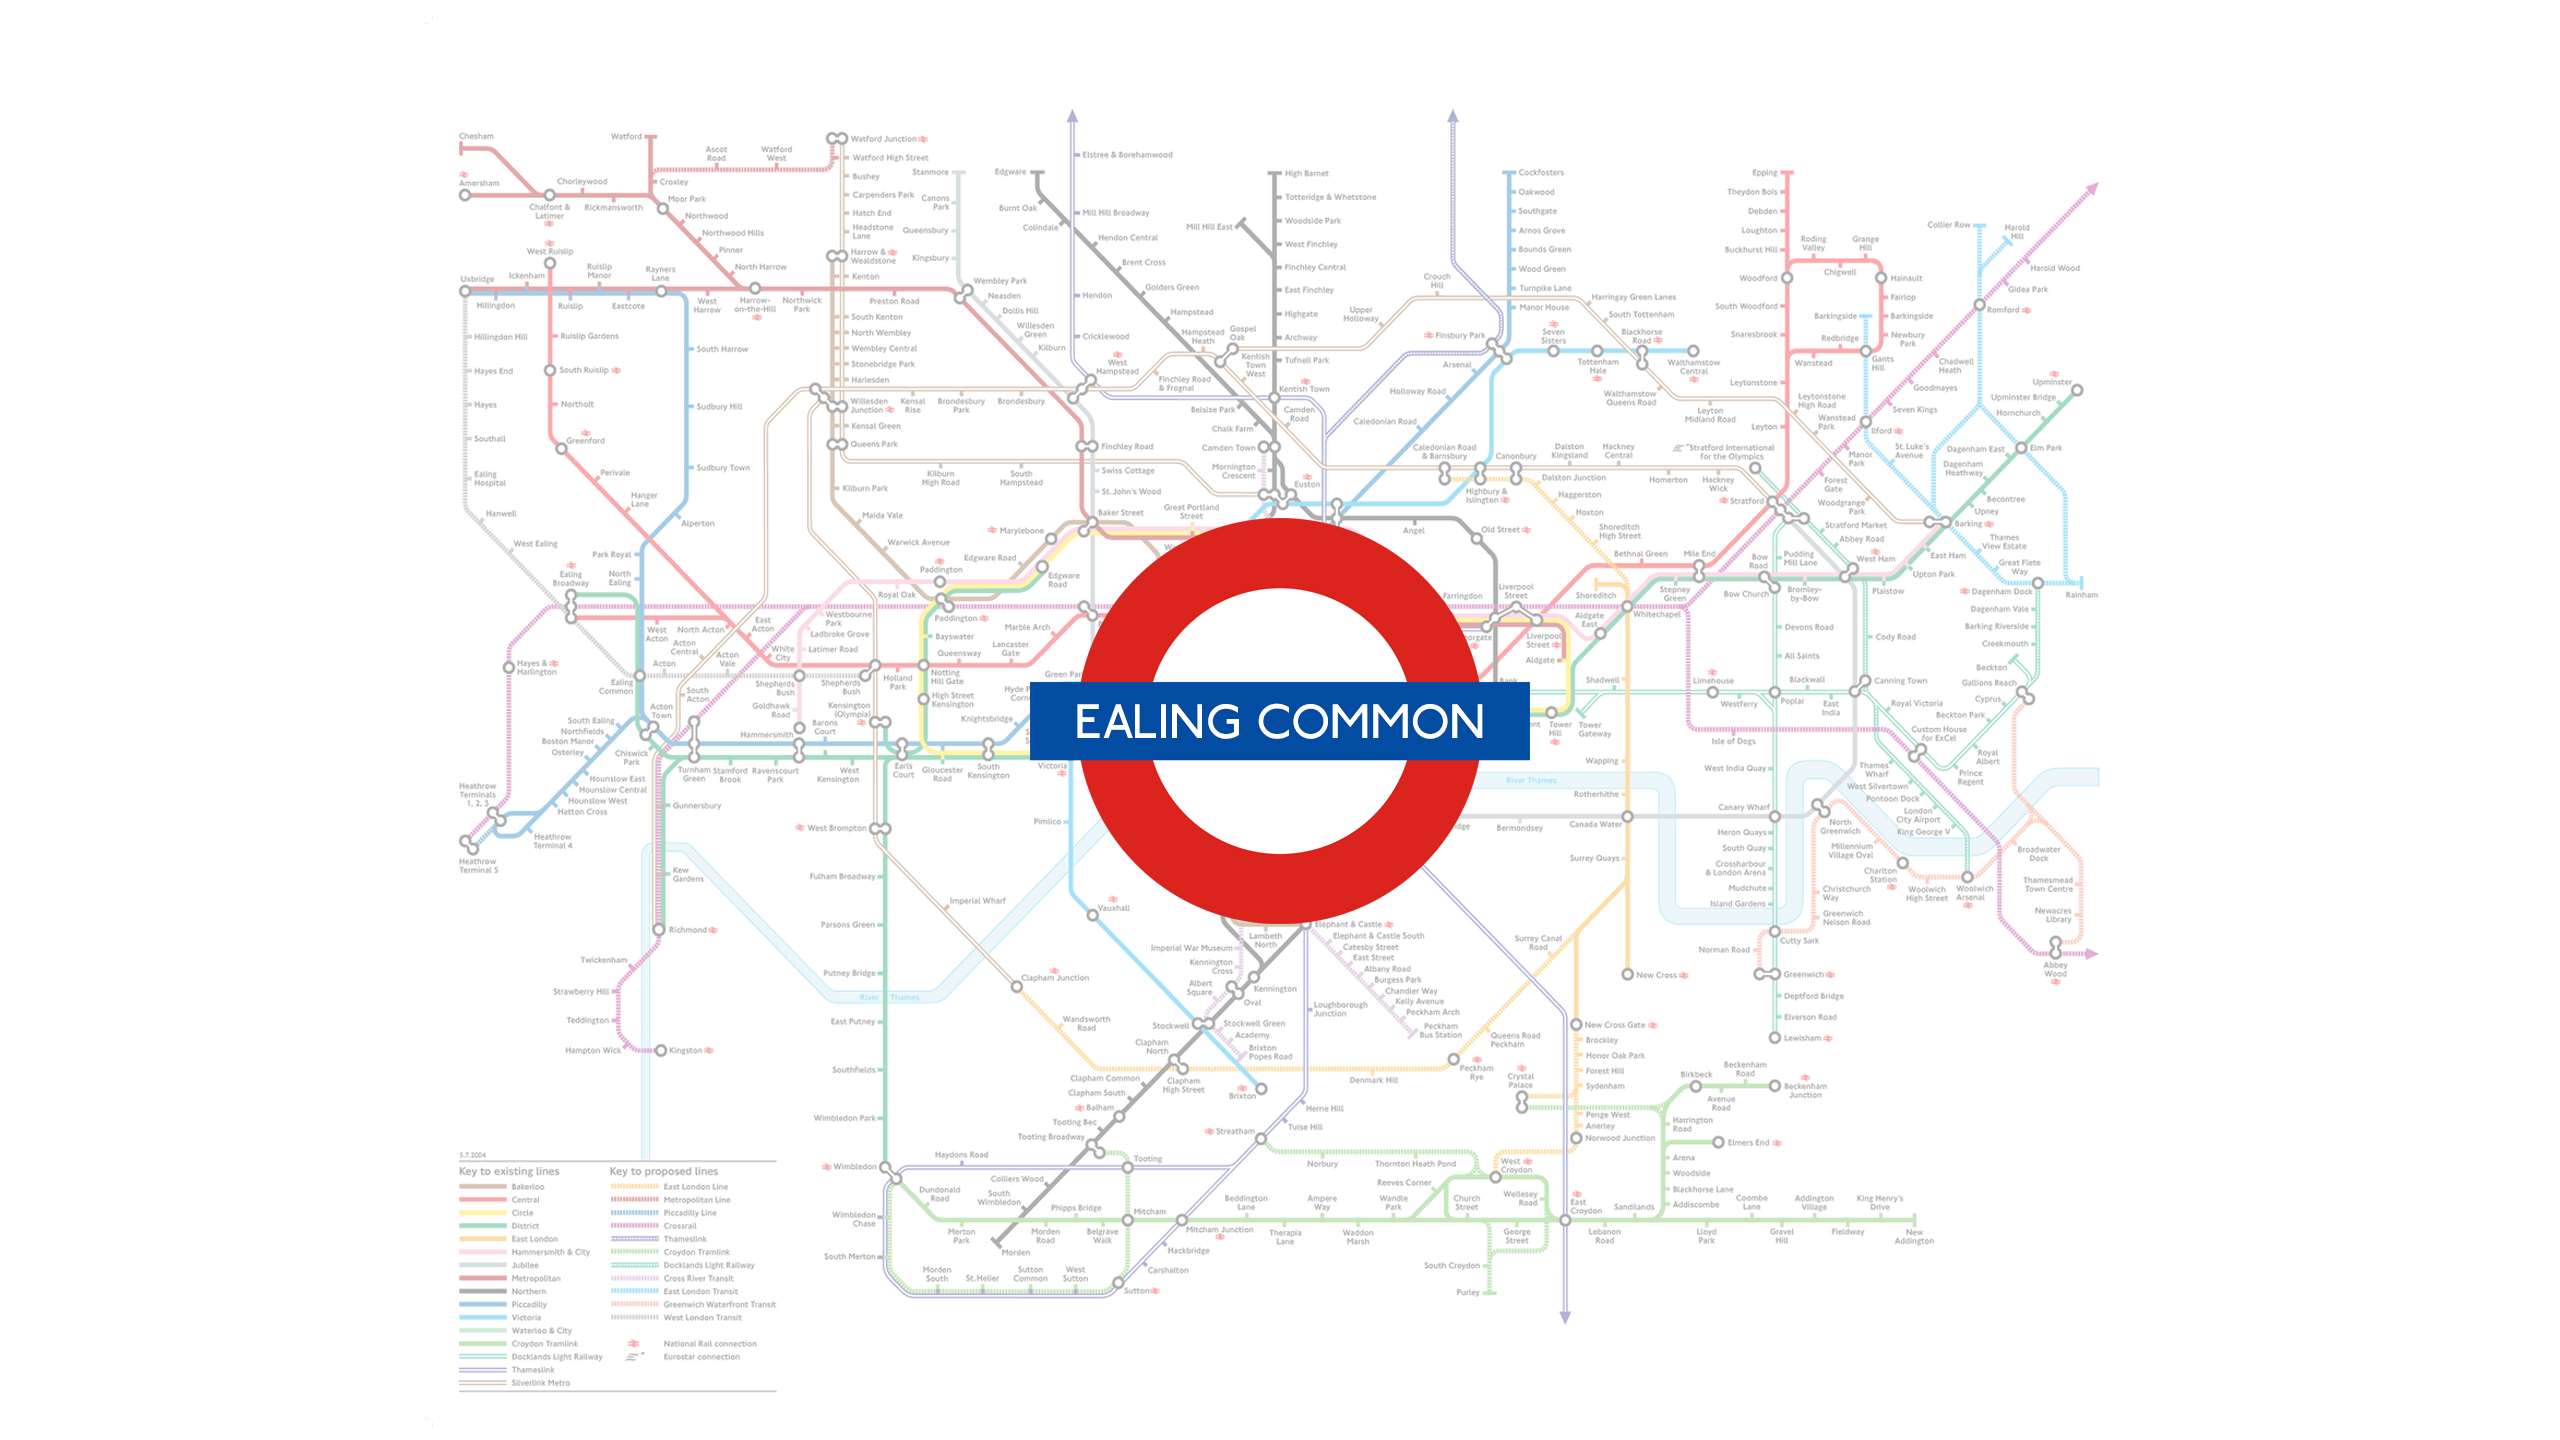 Ealing Common (Map)